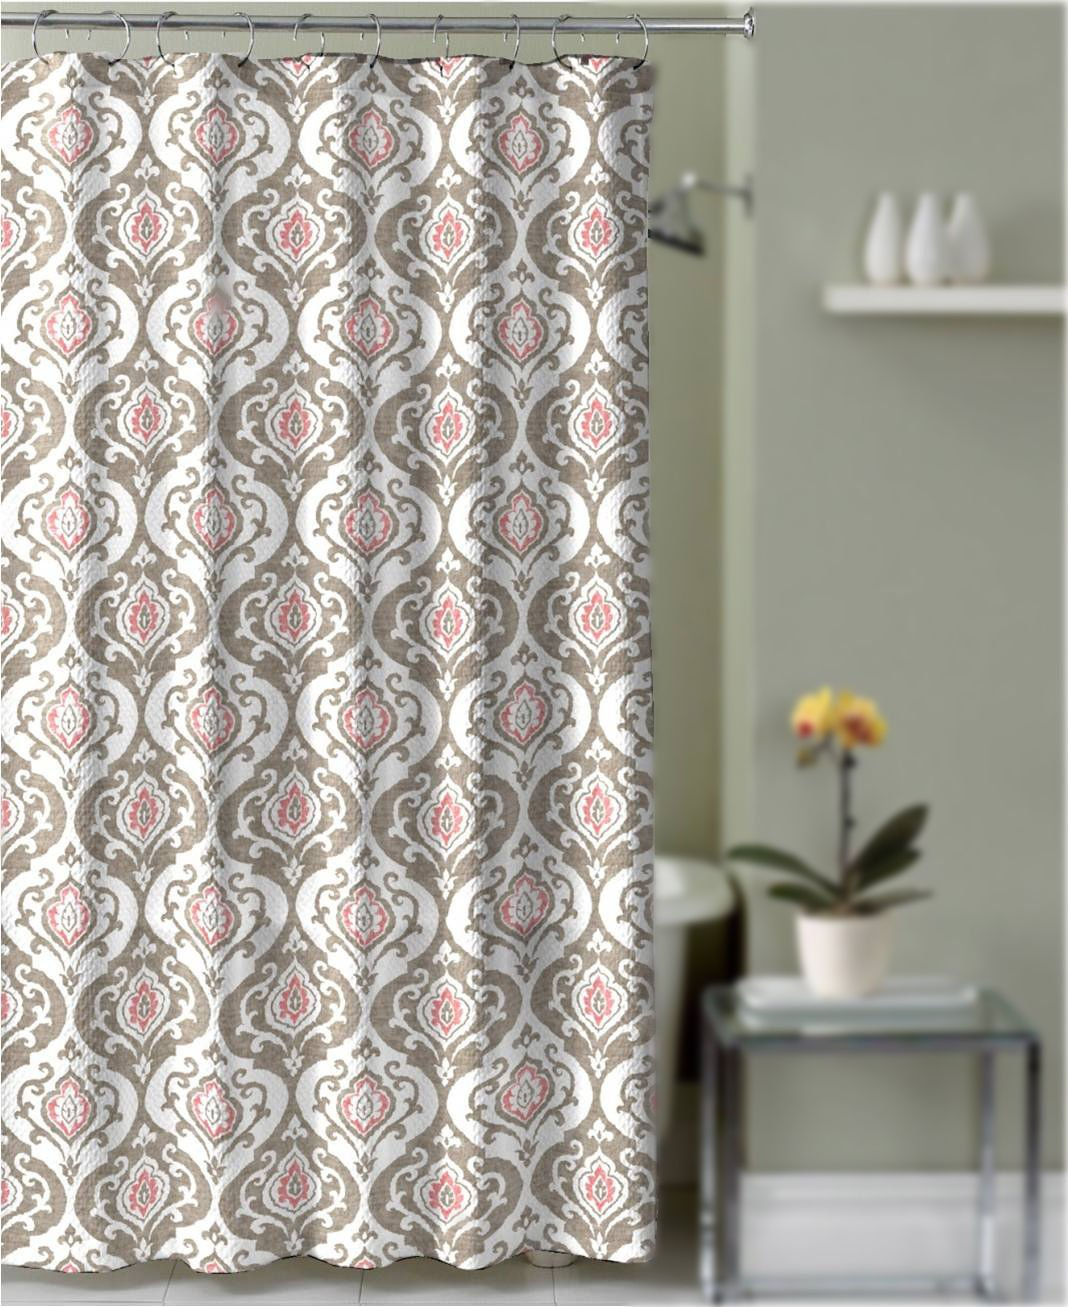 Shower Curtain Taupe and Coral Damask Medallion Decorative Fabric Bathroom